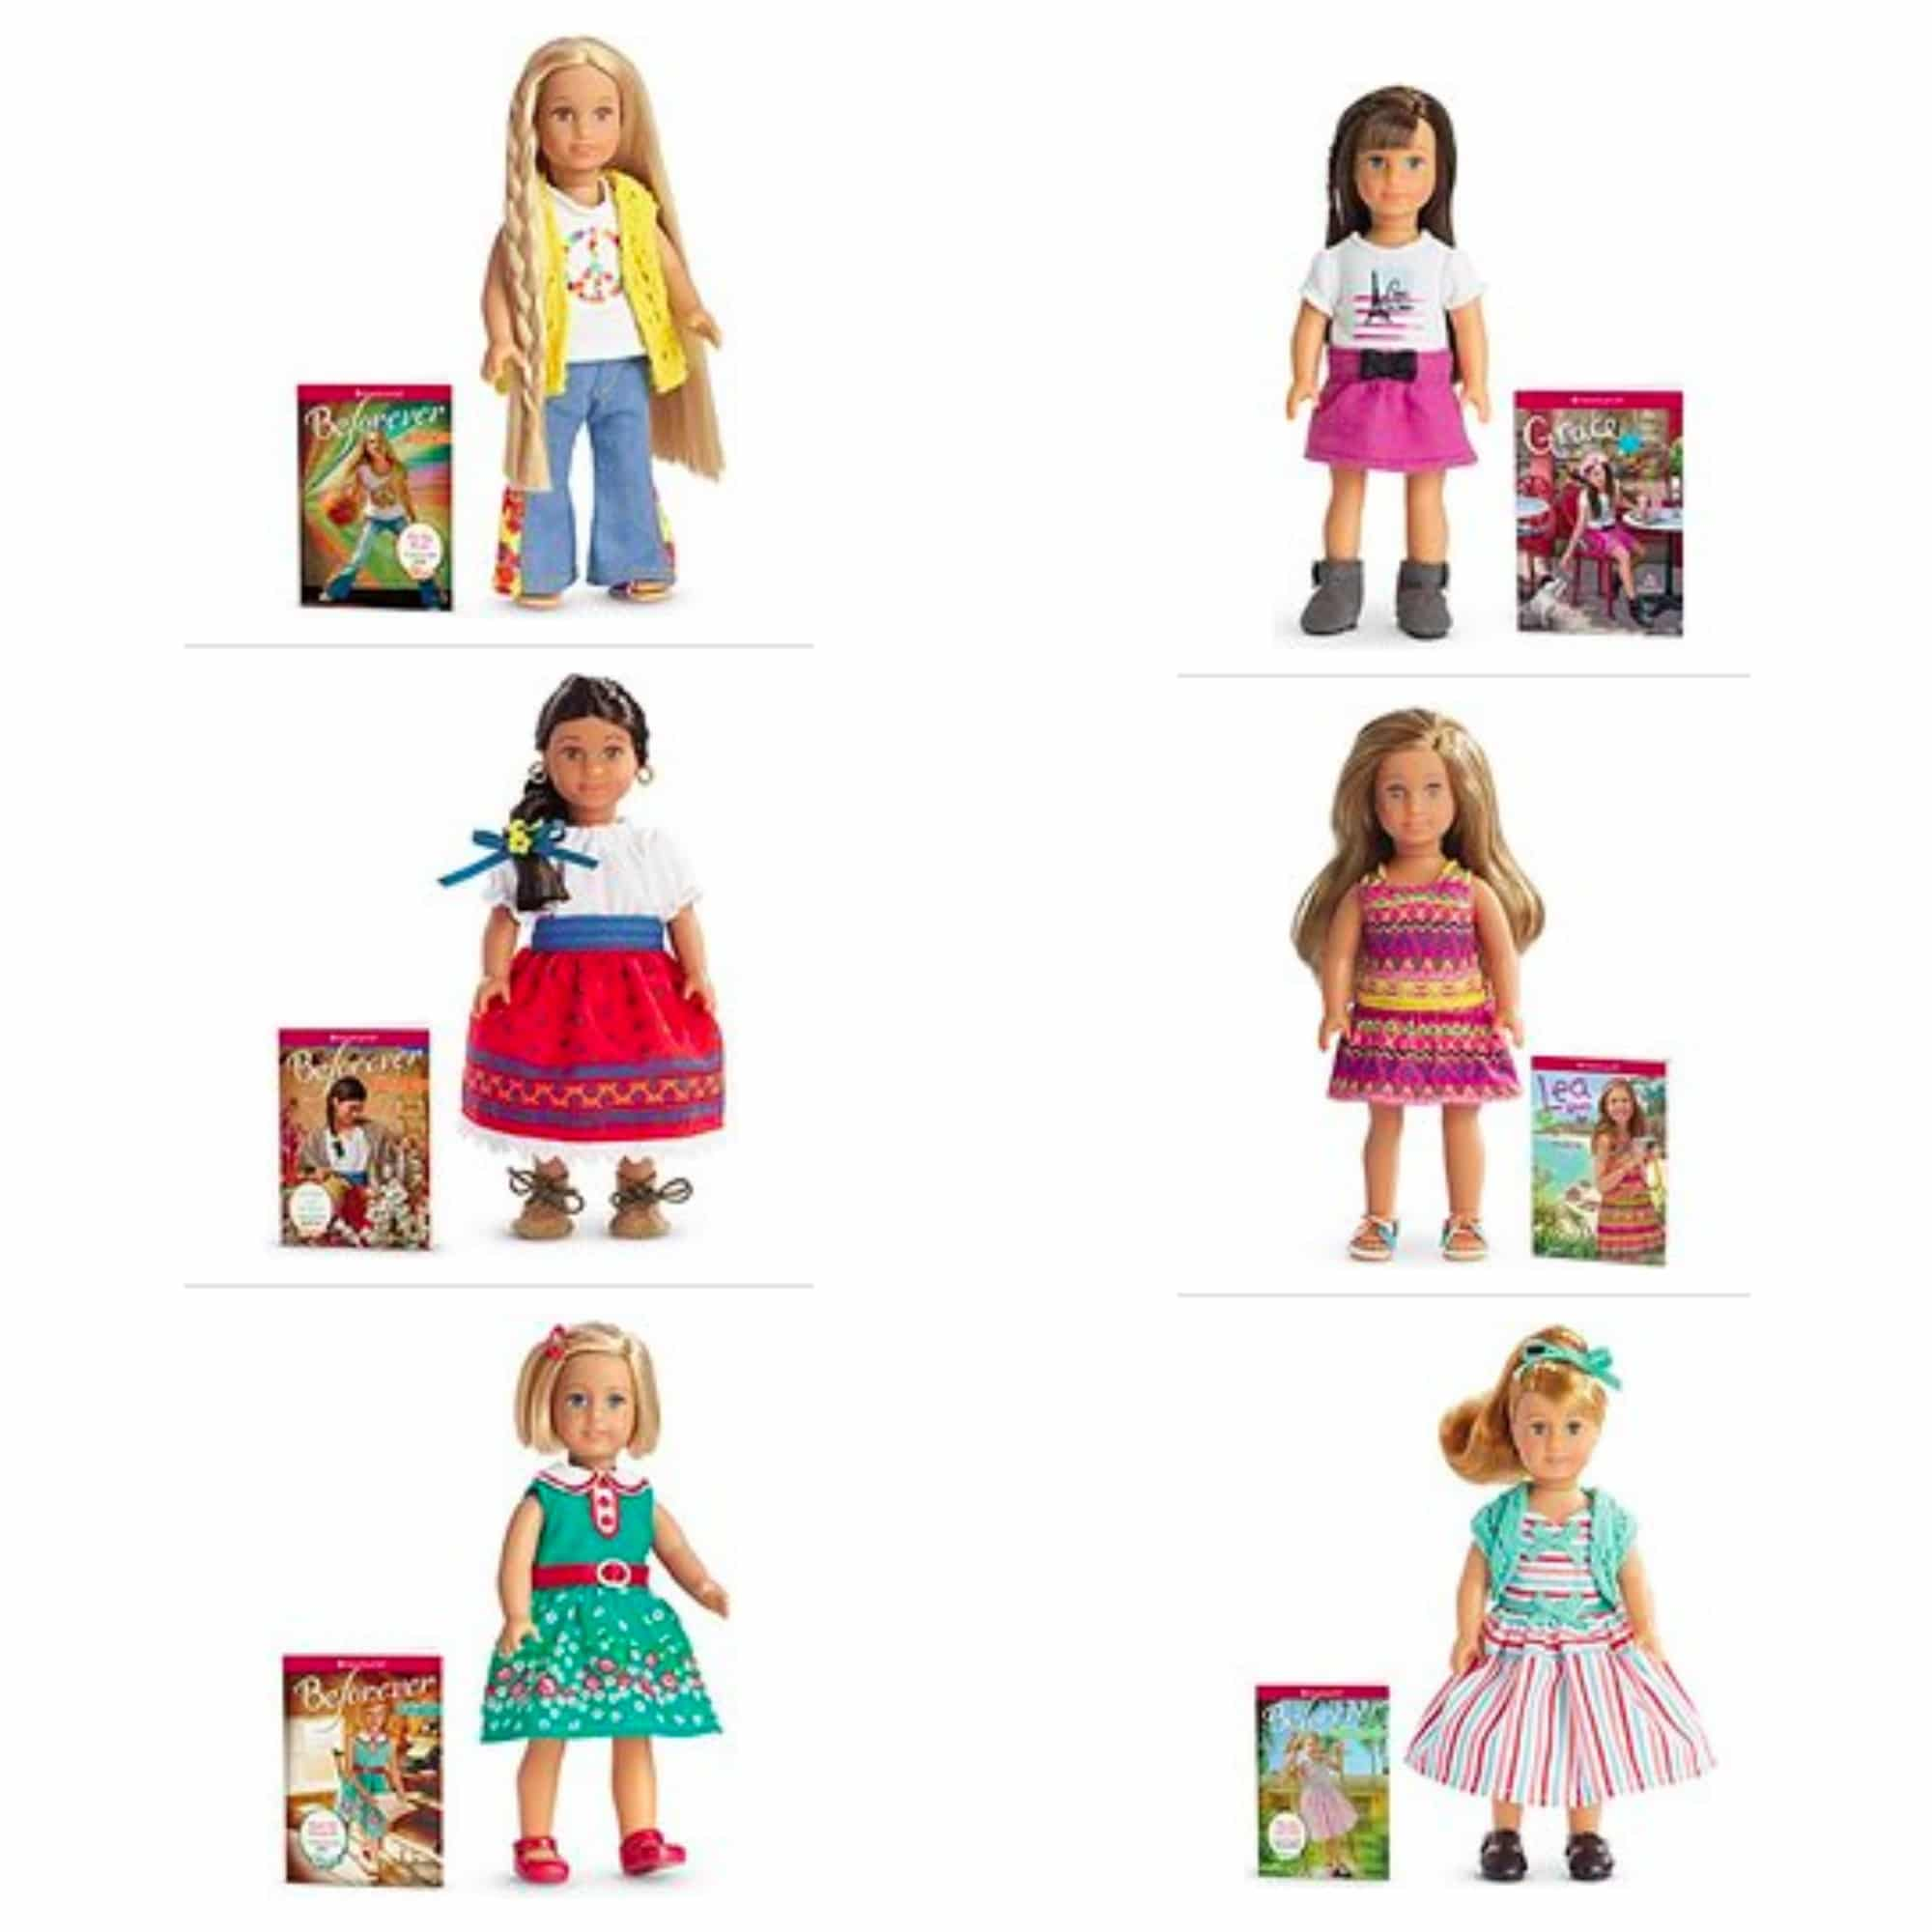 american-girl-doll-collage